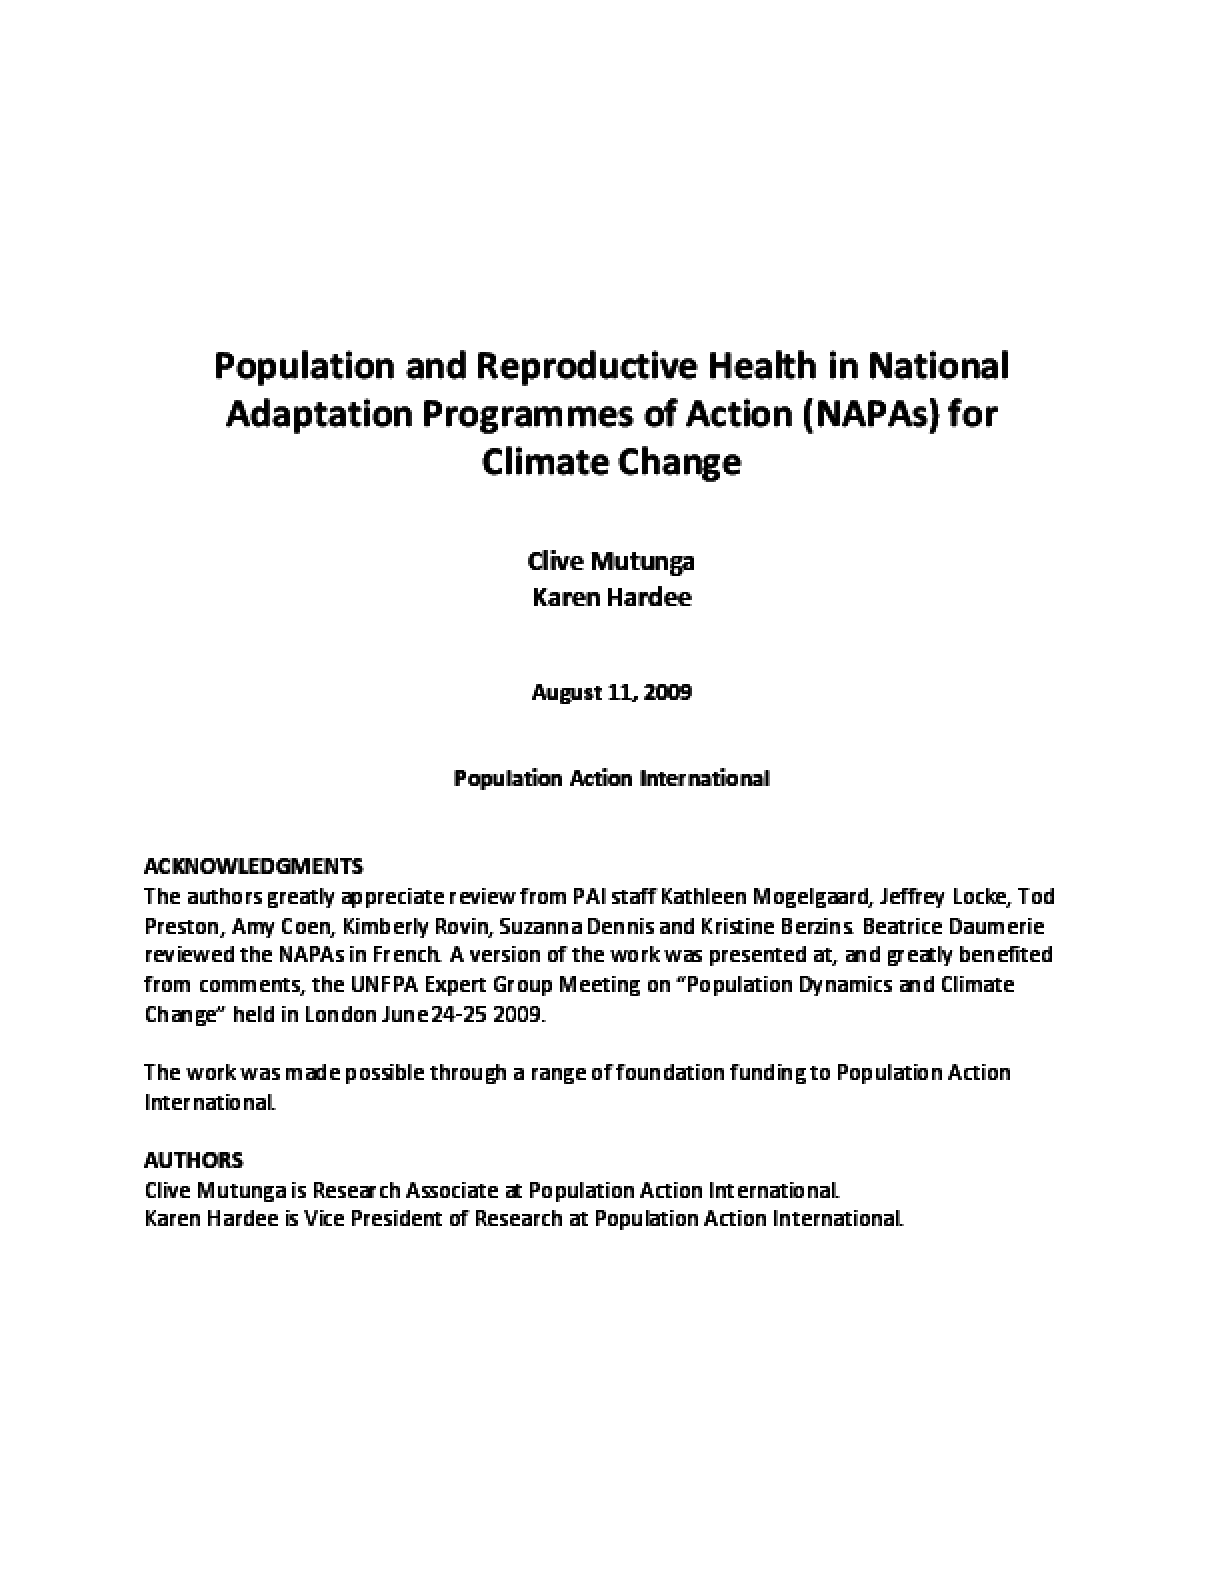 Population and Reproductive Health in National Adaptation Programs of Action